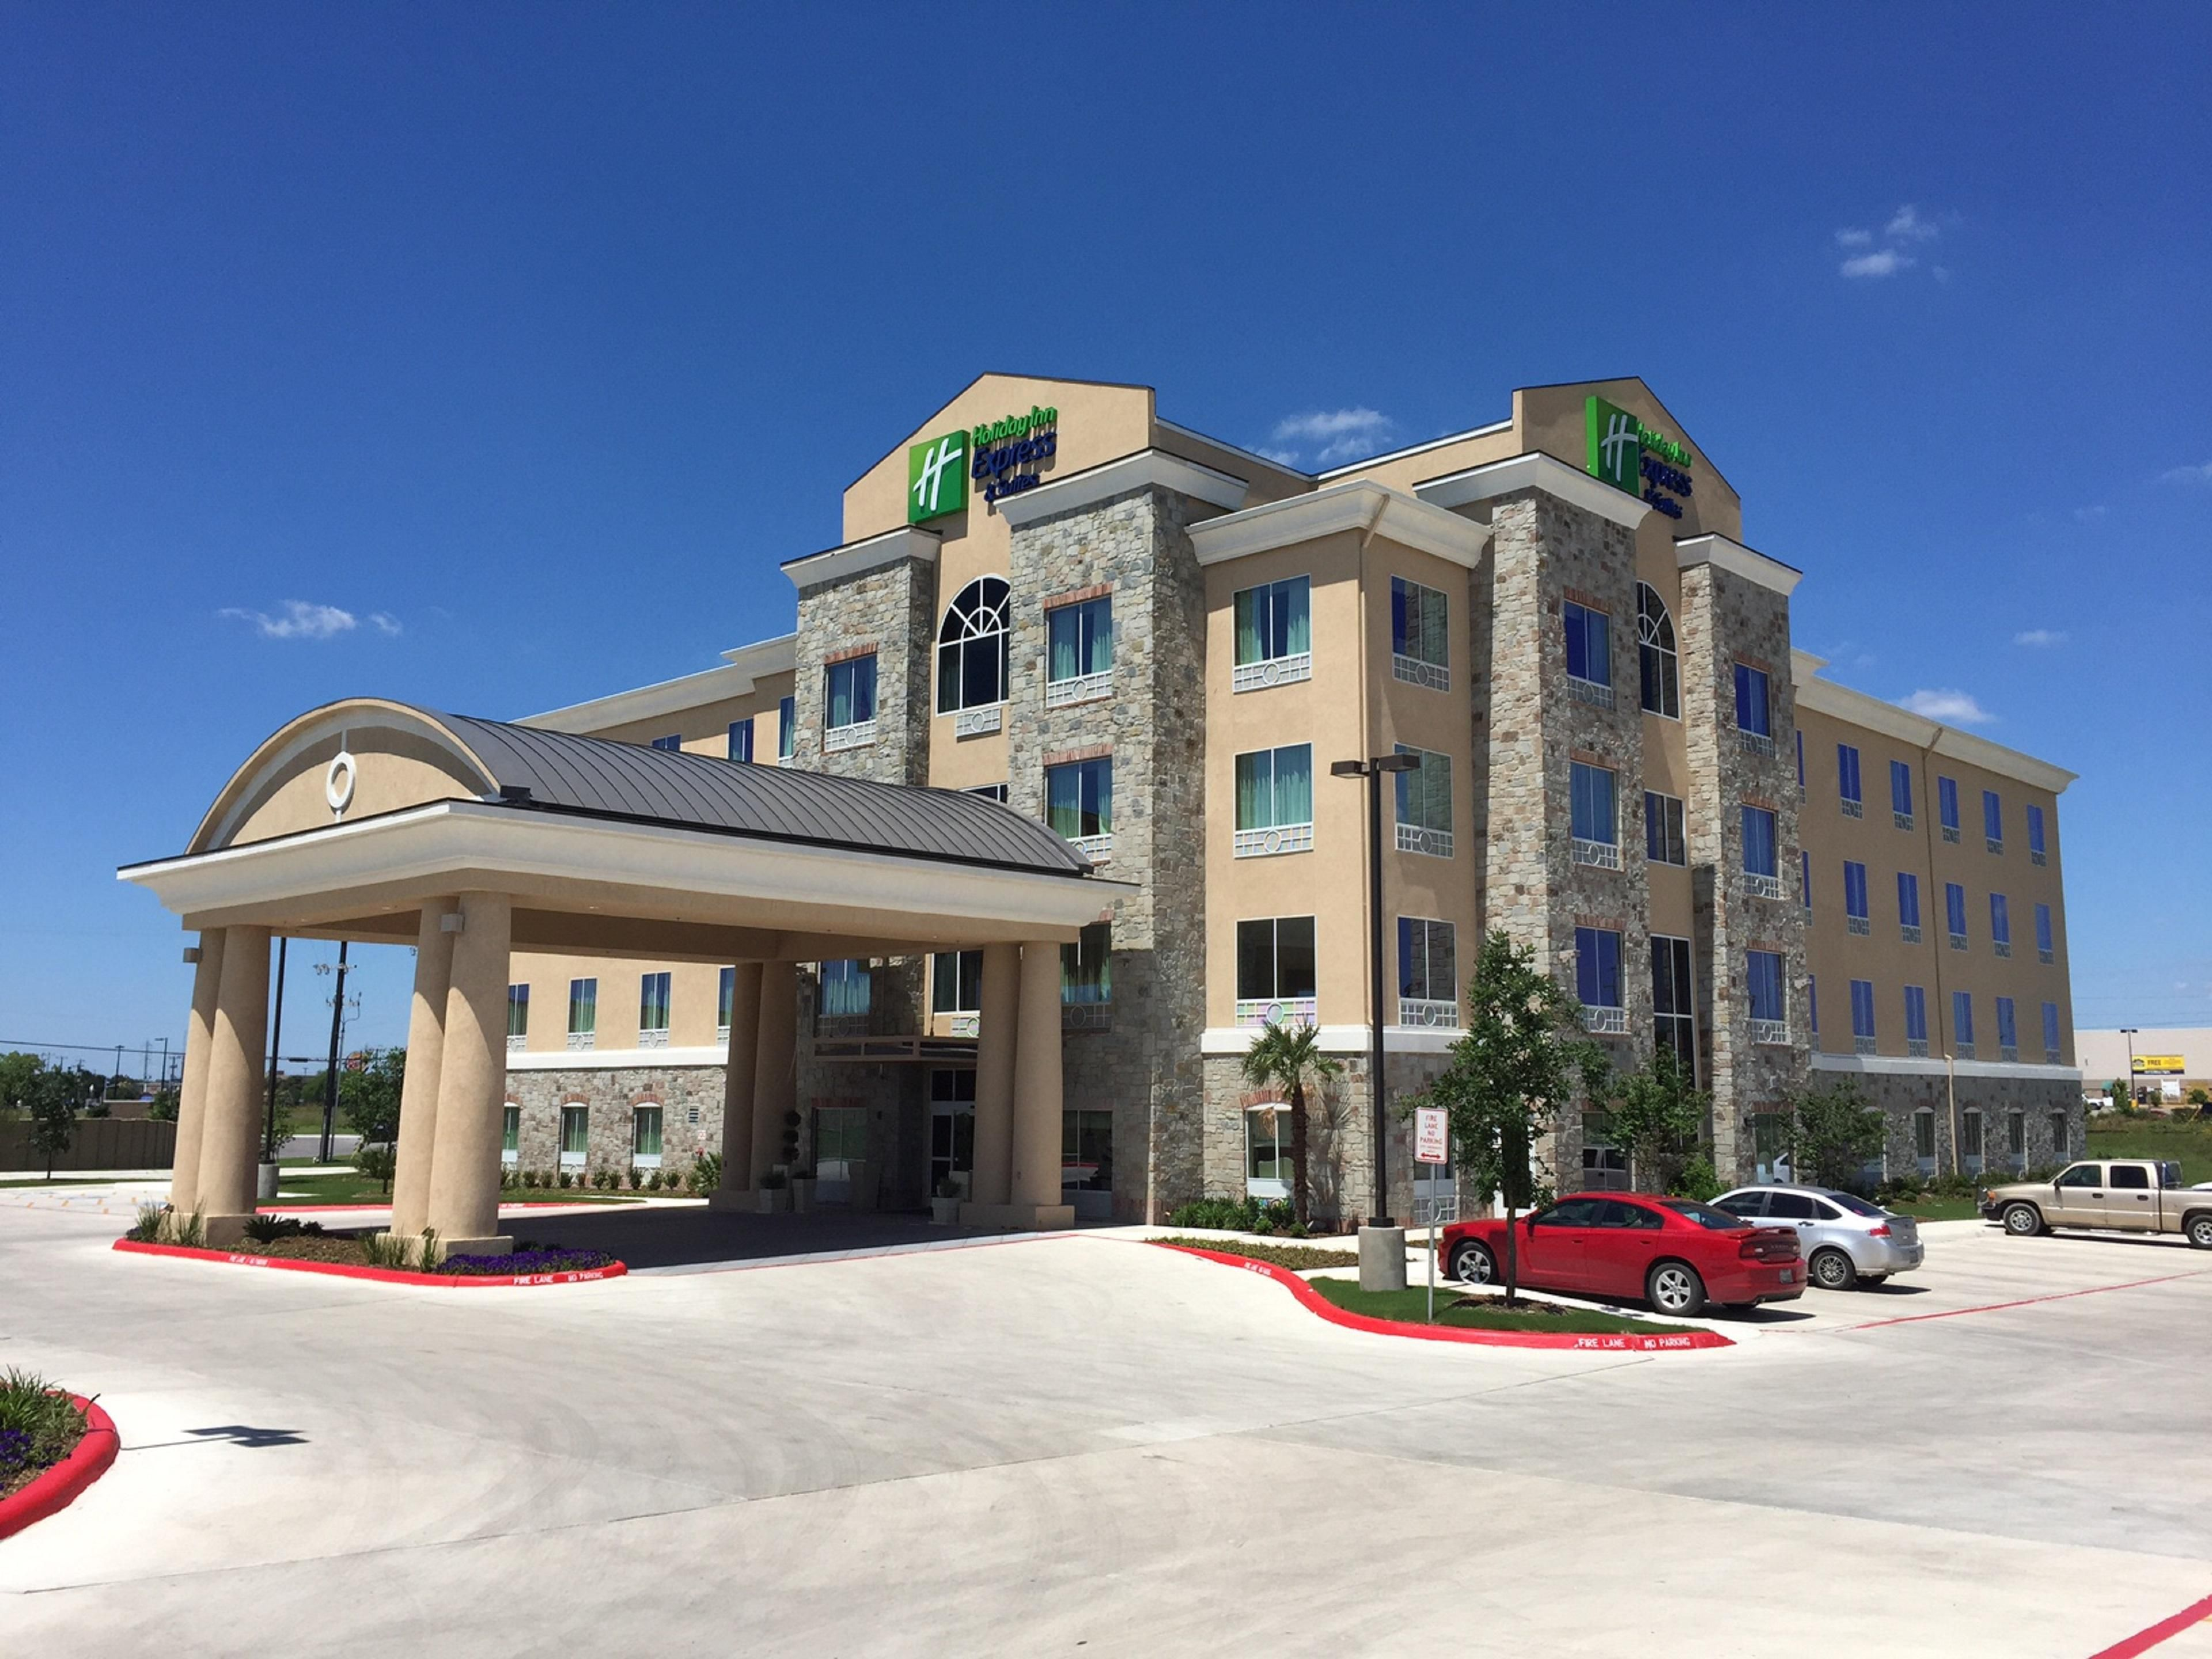 Come visit our brand new hotel located in Brooks City Base